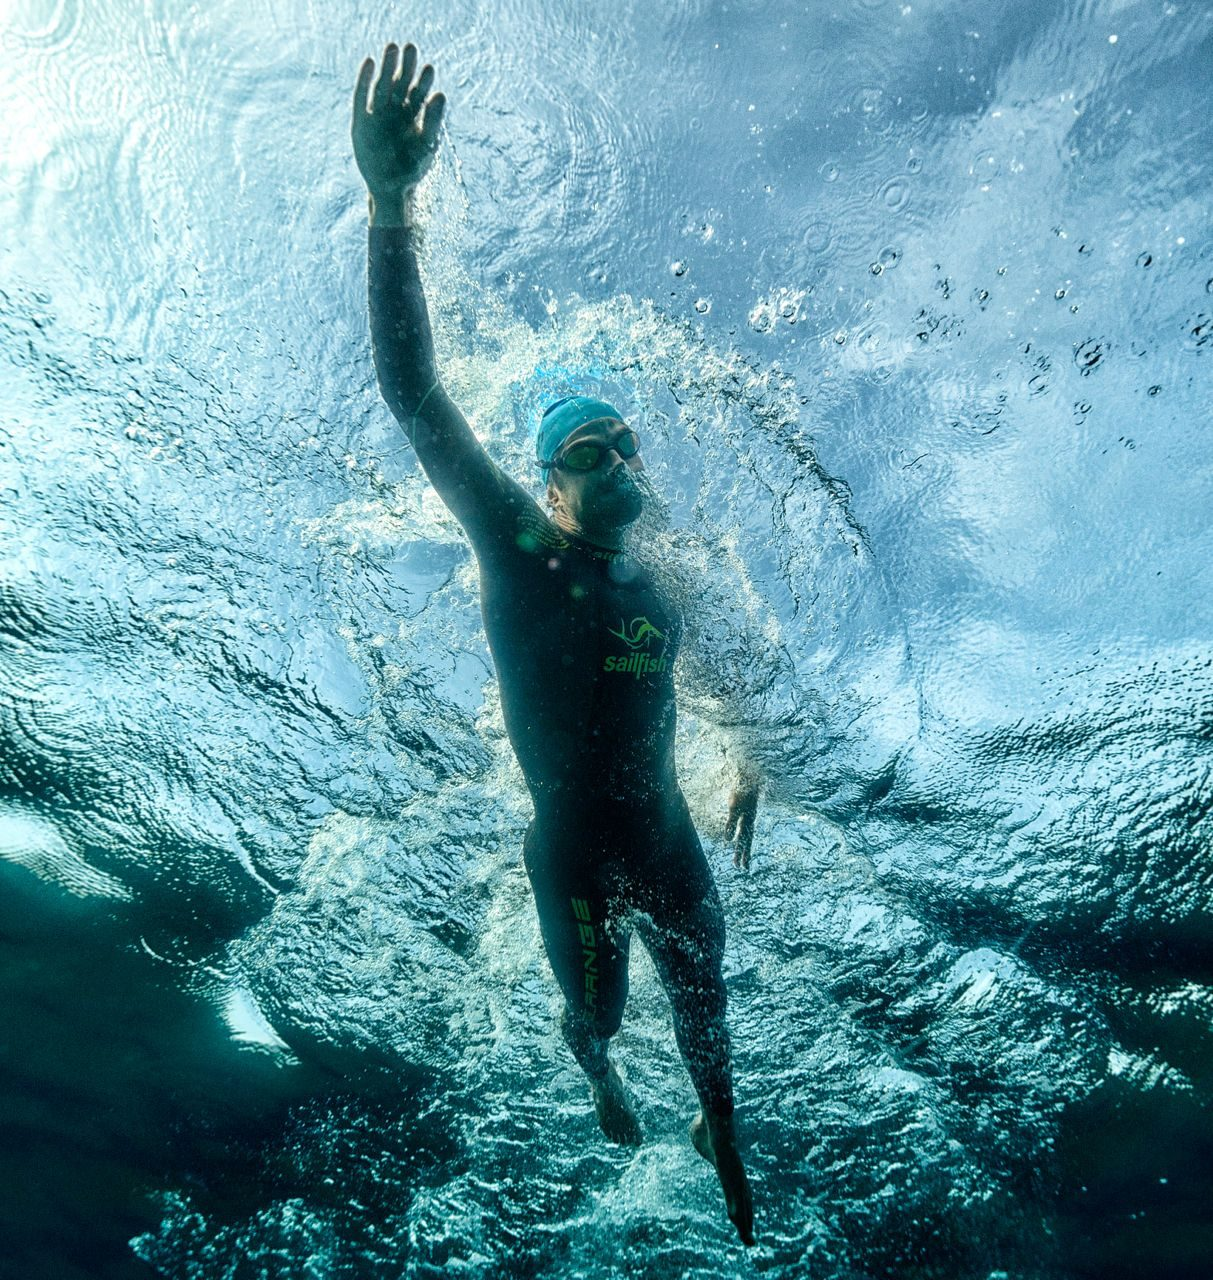 Triathlete in swim training